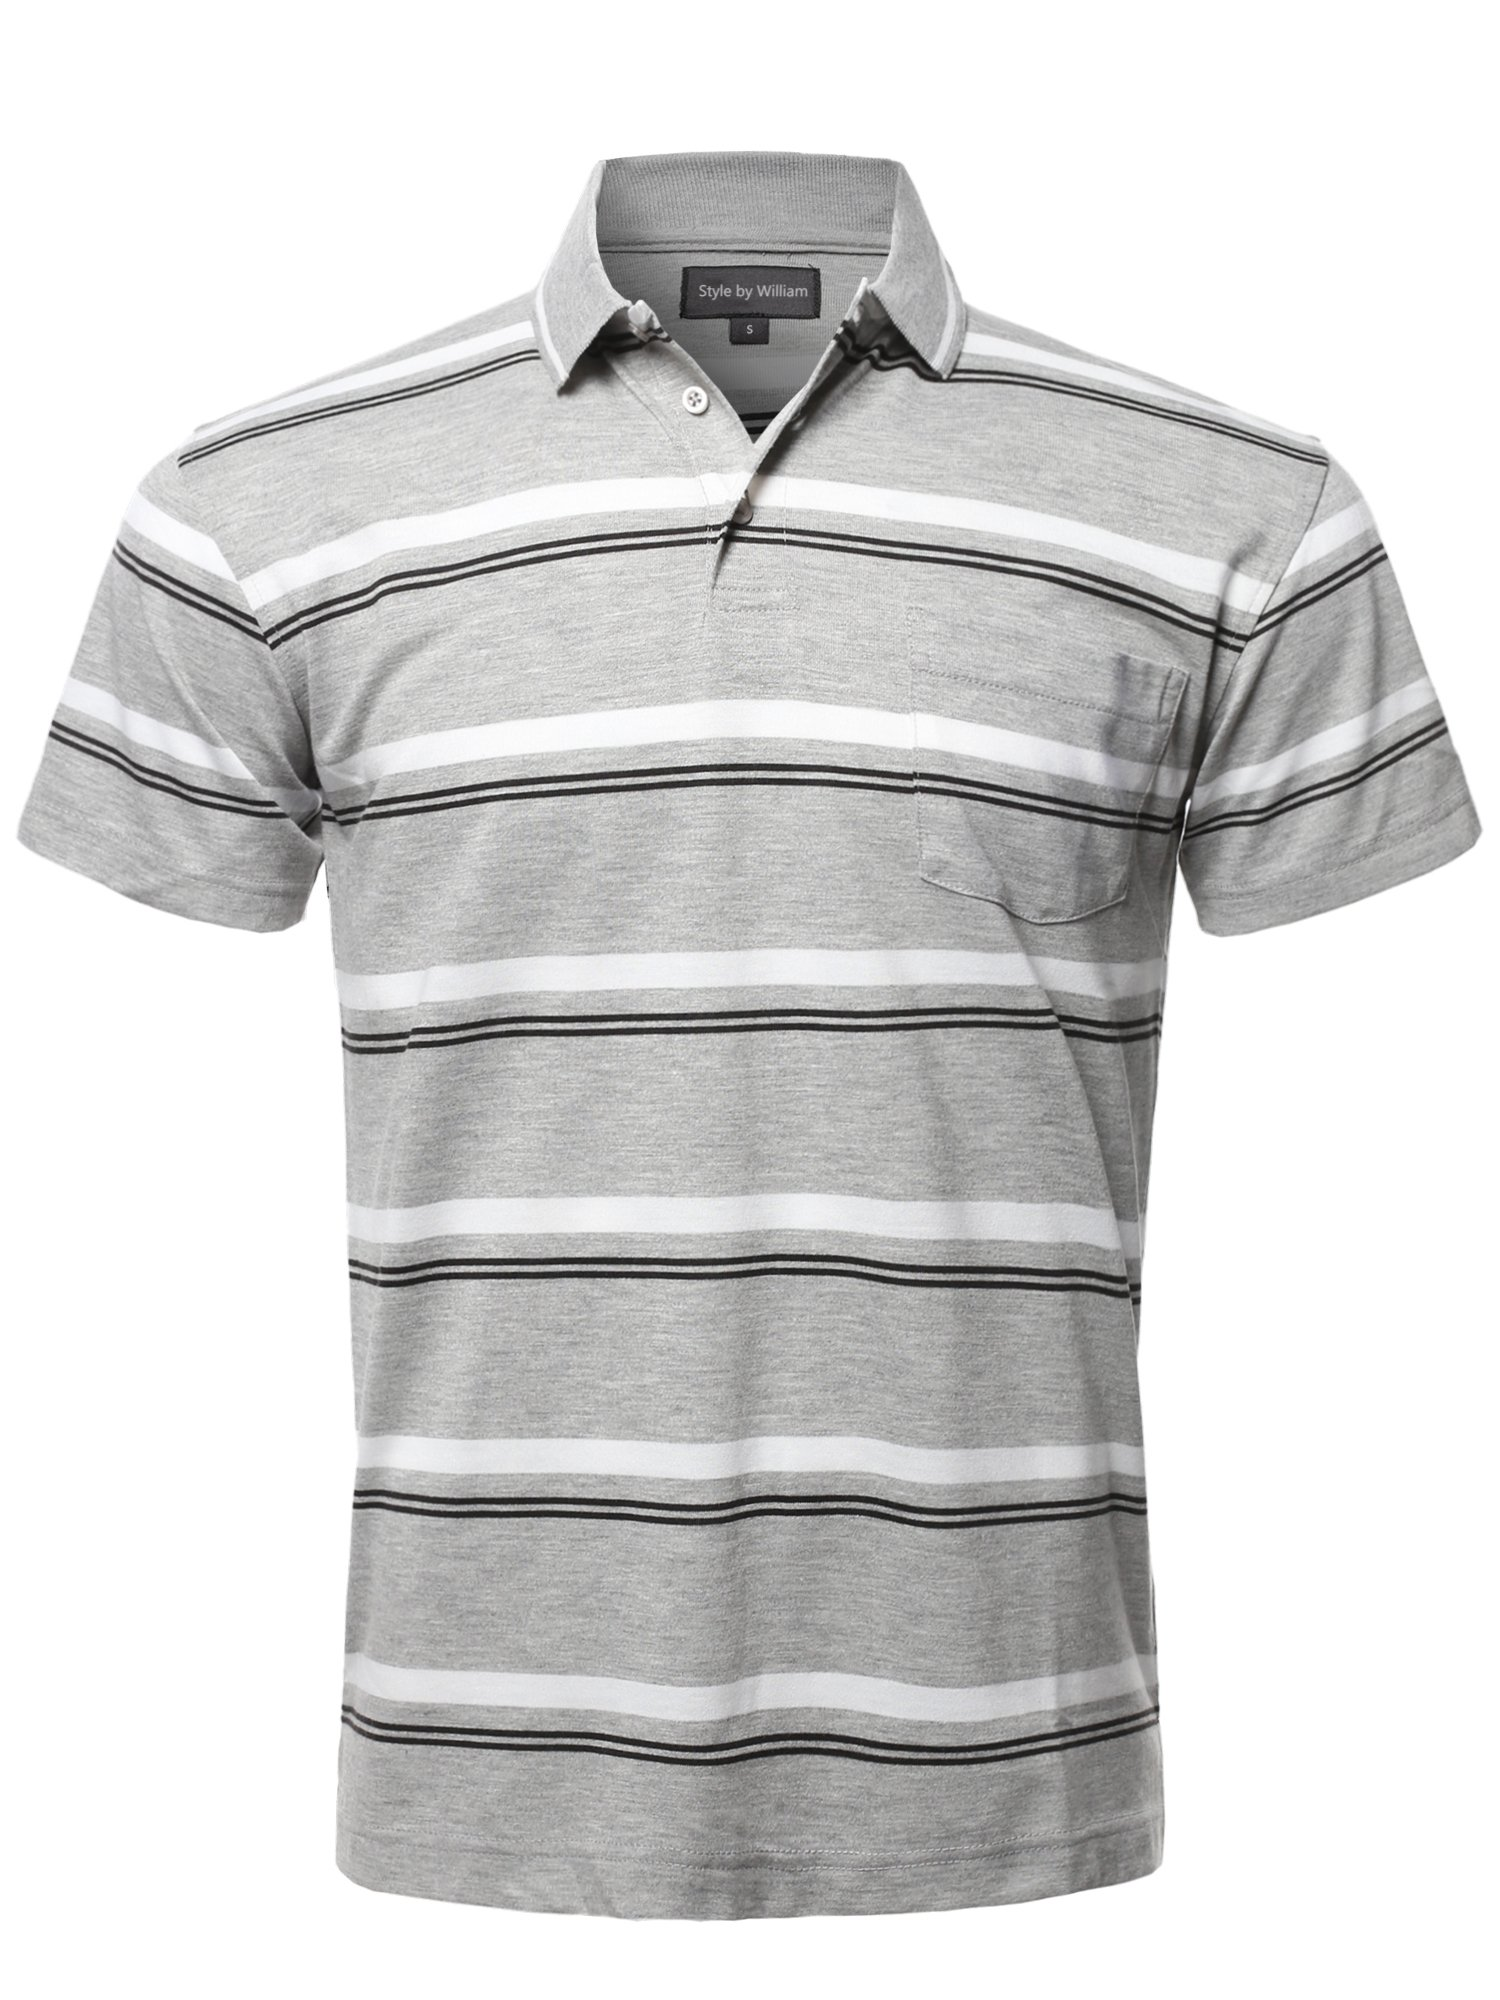 Style by William Casual Summer Basic Striped Chest Pocket Short Sleeve Polo T-Shirt Gray XL